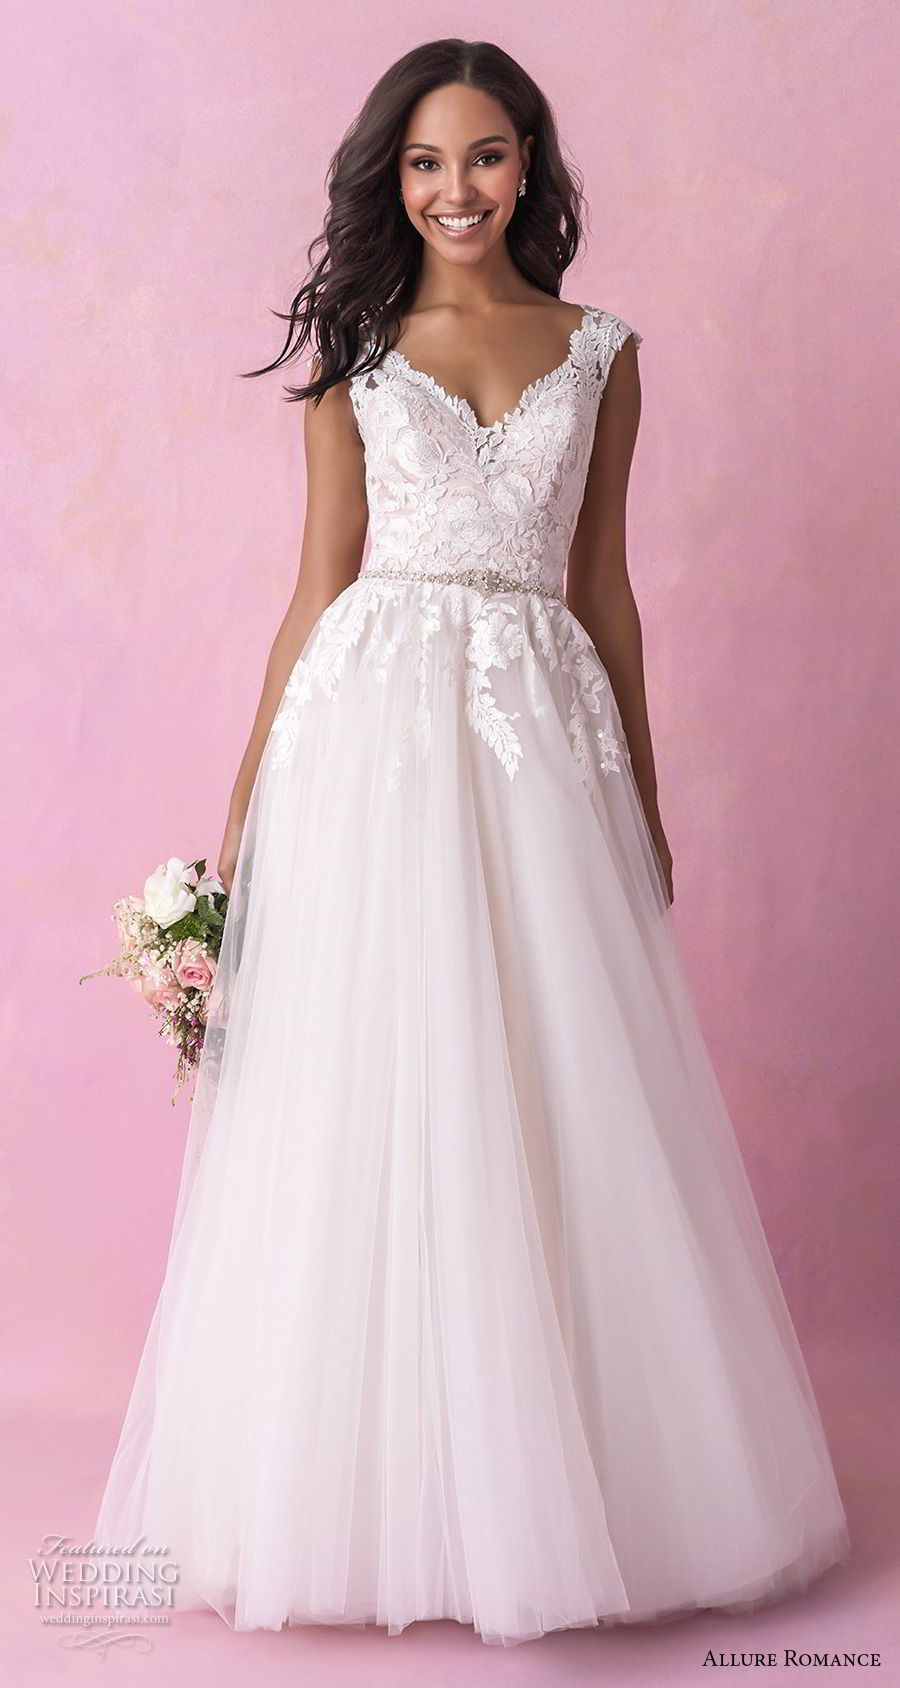 allure romance fall 2018 bridal cap sleeves v neck heavily embellished bodice tulle skirt romantic soft a  line wedding dress open v back chapel train (17) mv